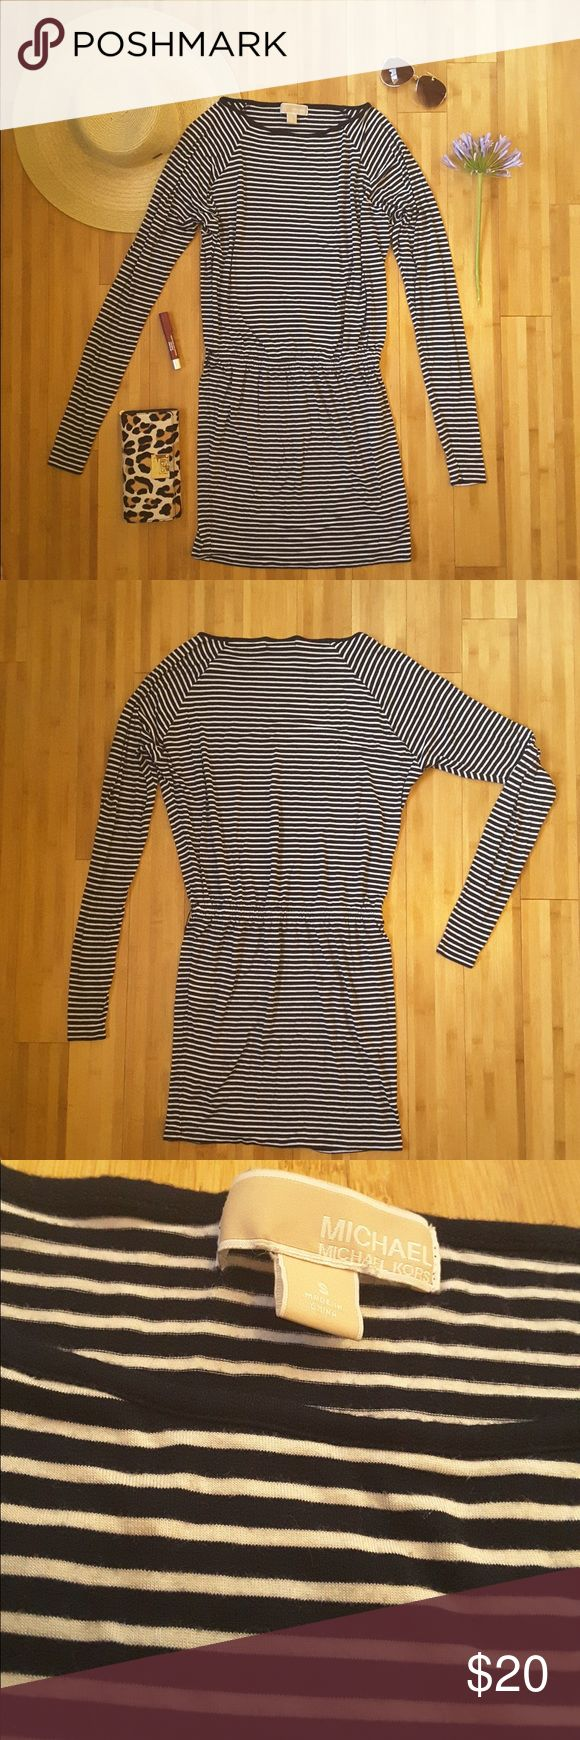 Michael Kors Navy Striped Dress MICHAEL Michael Kors Dress in excellent condition. MICHAEL Michael Kors Dresses Long Sleeve